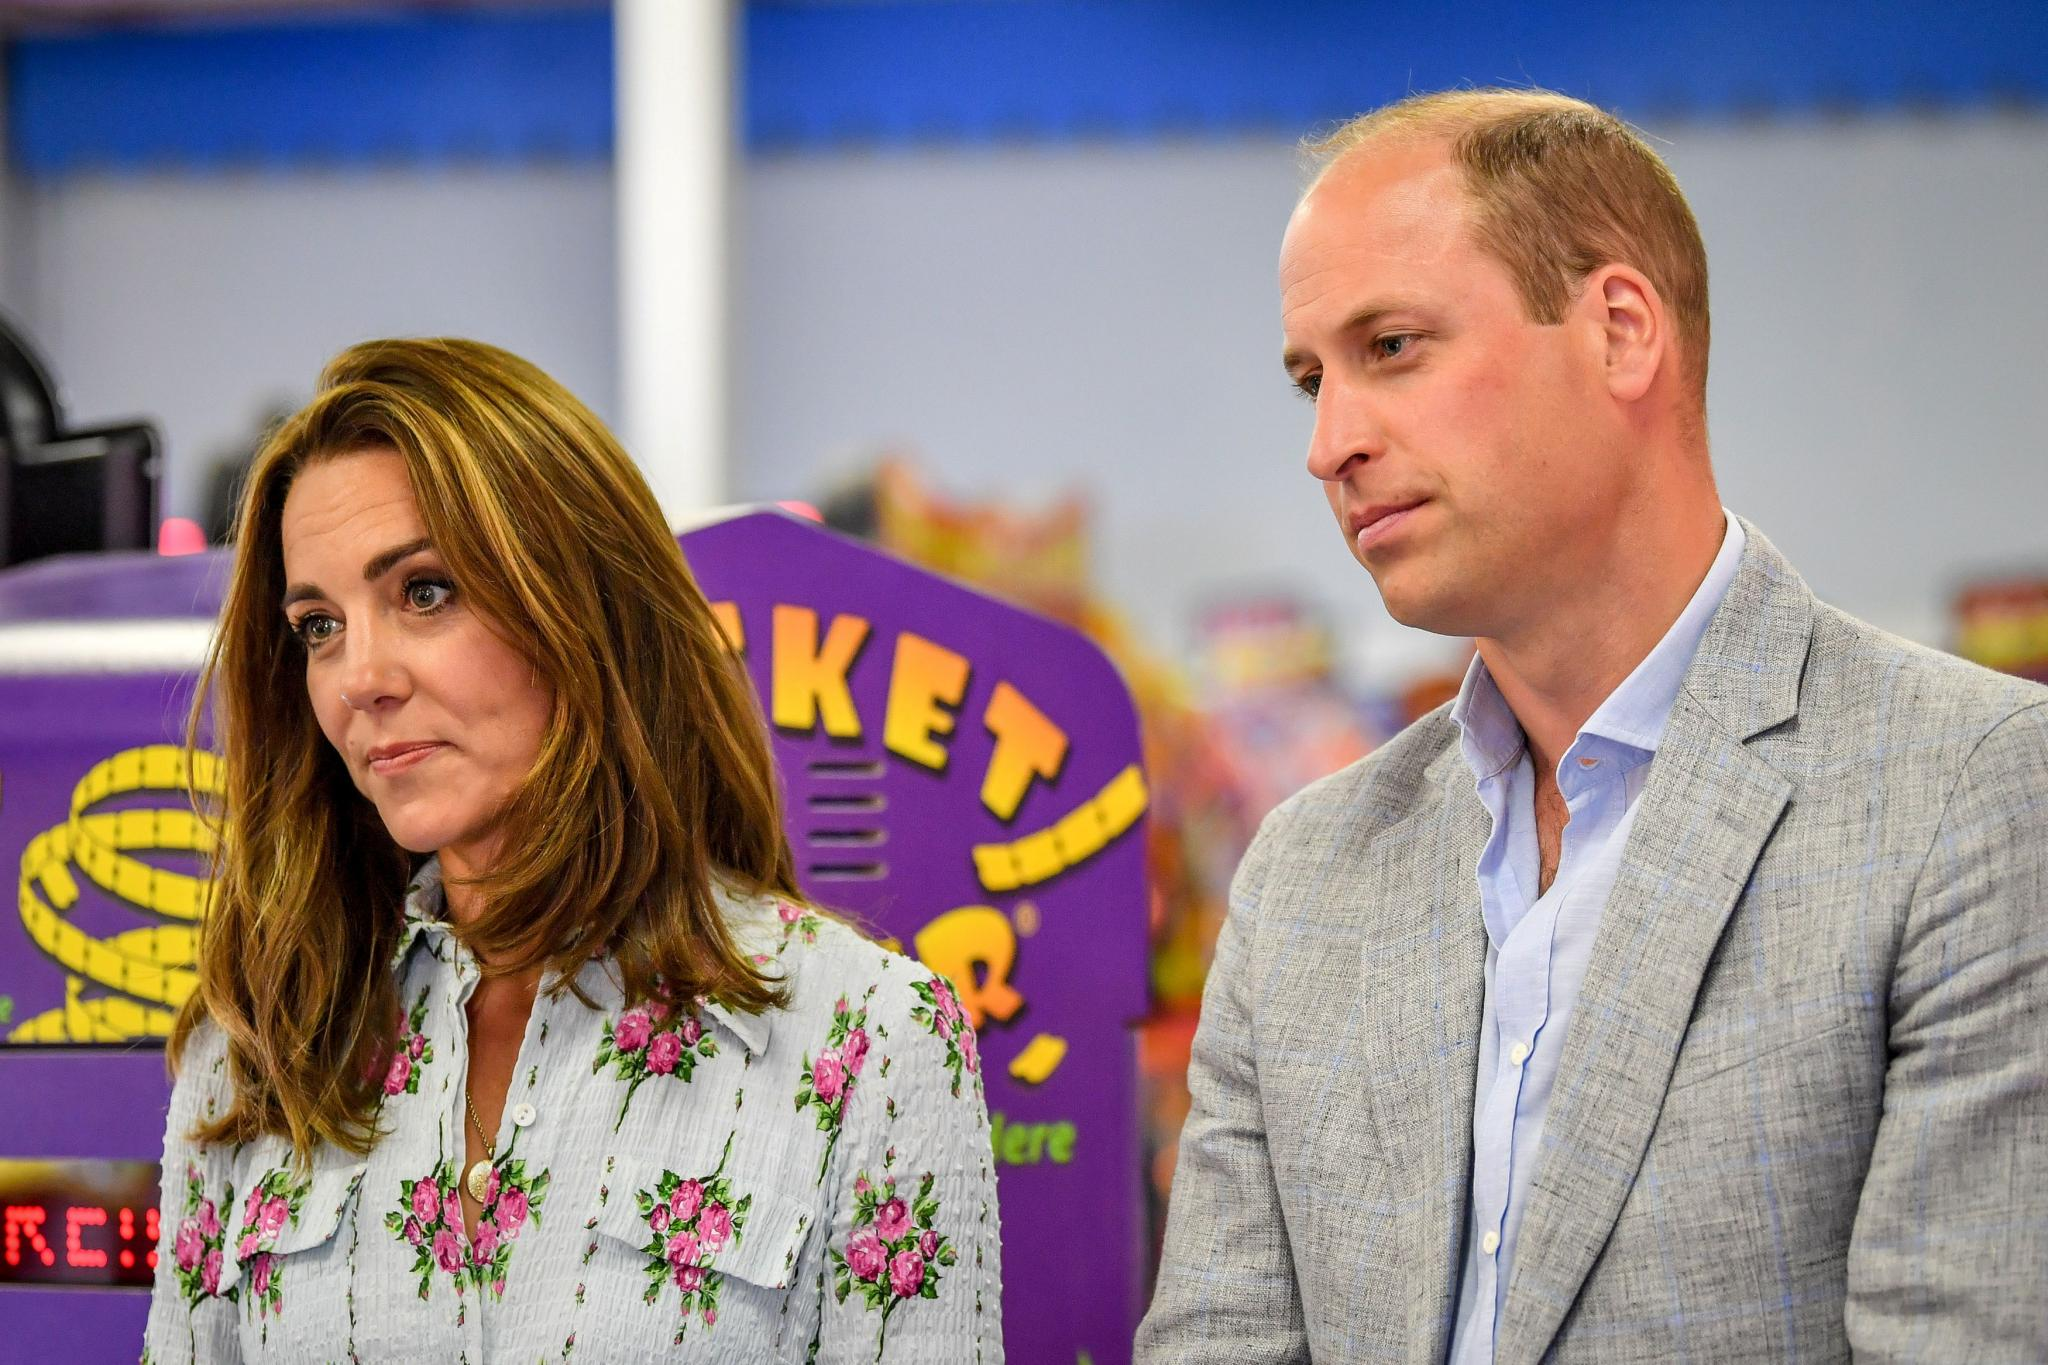 Britain's Prince William and Catherine, Duchess of Cambridge visit South Wales